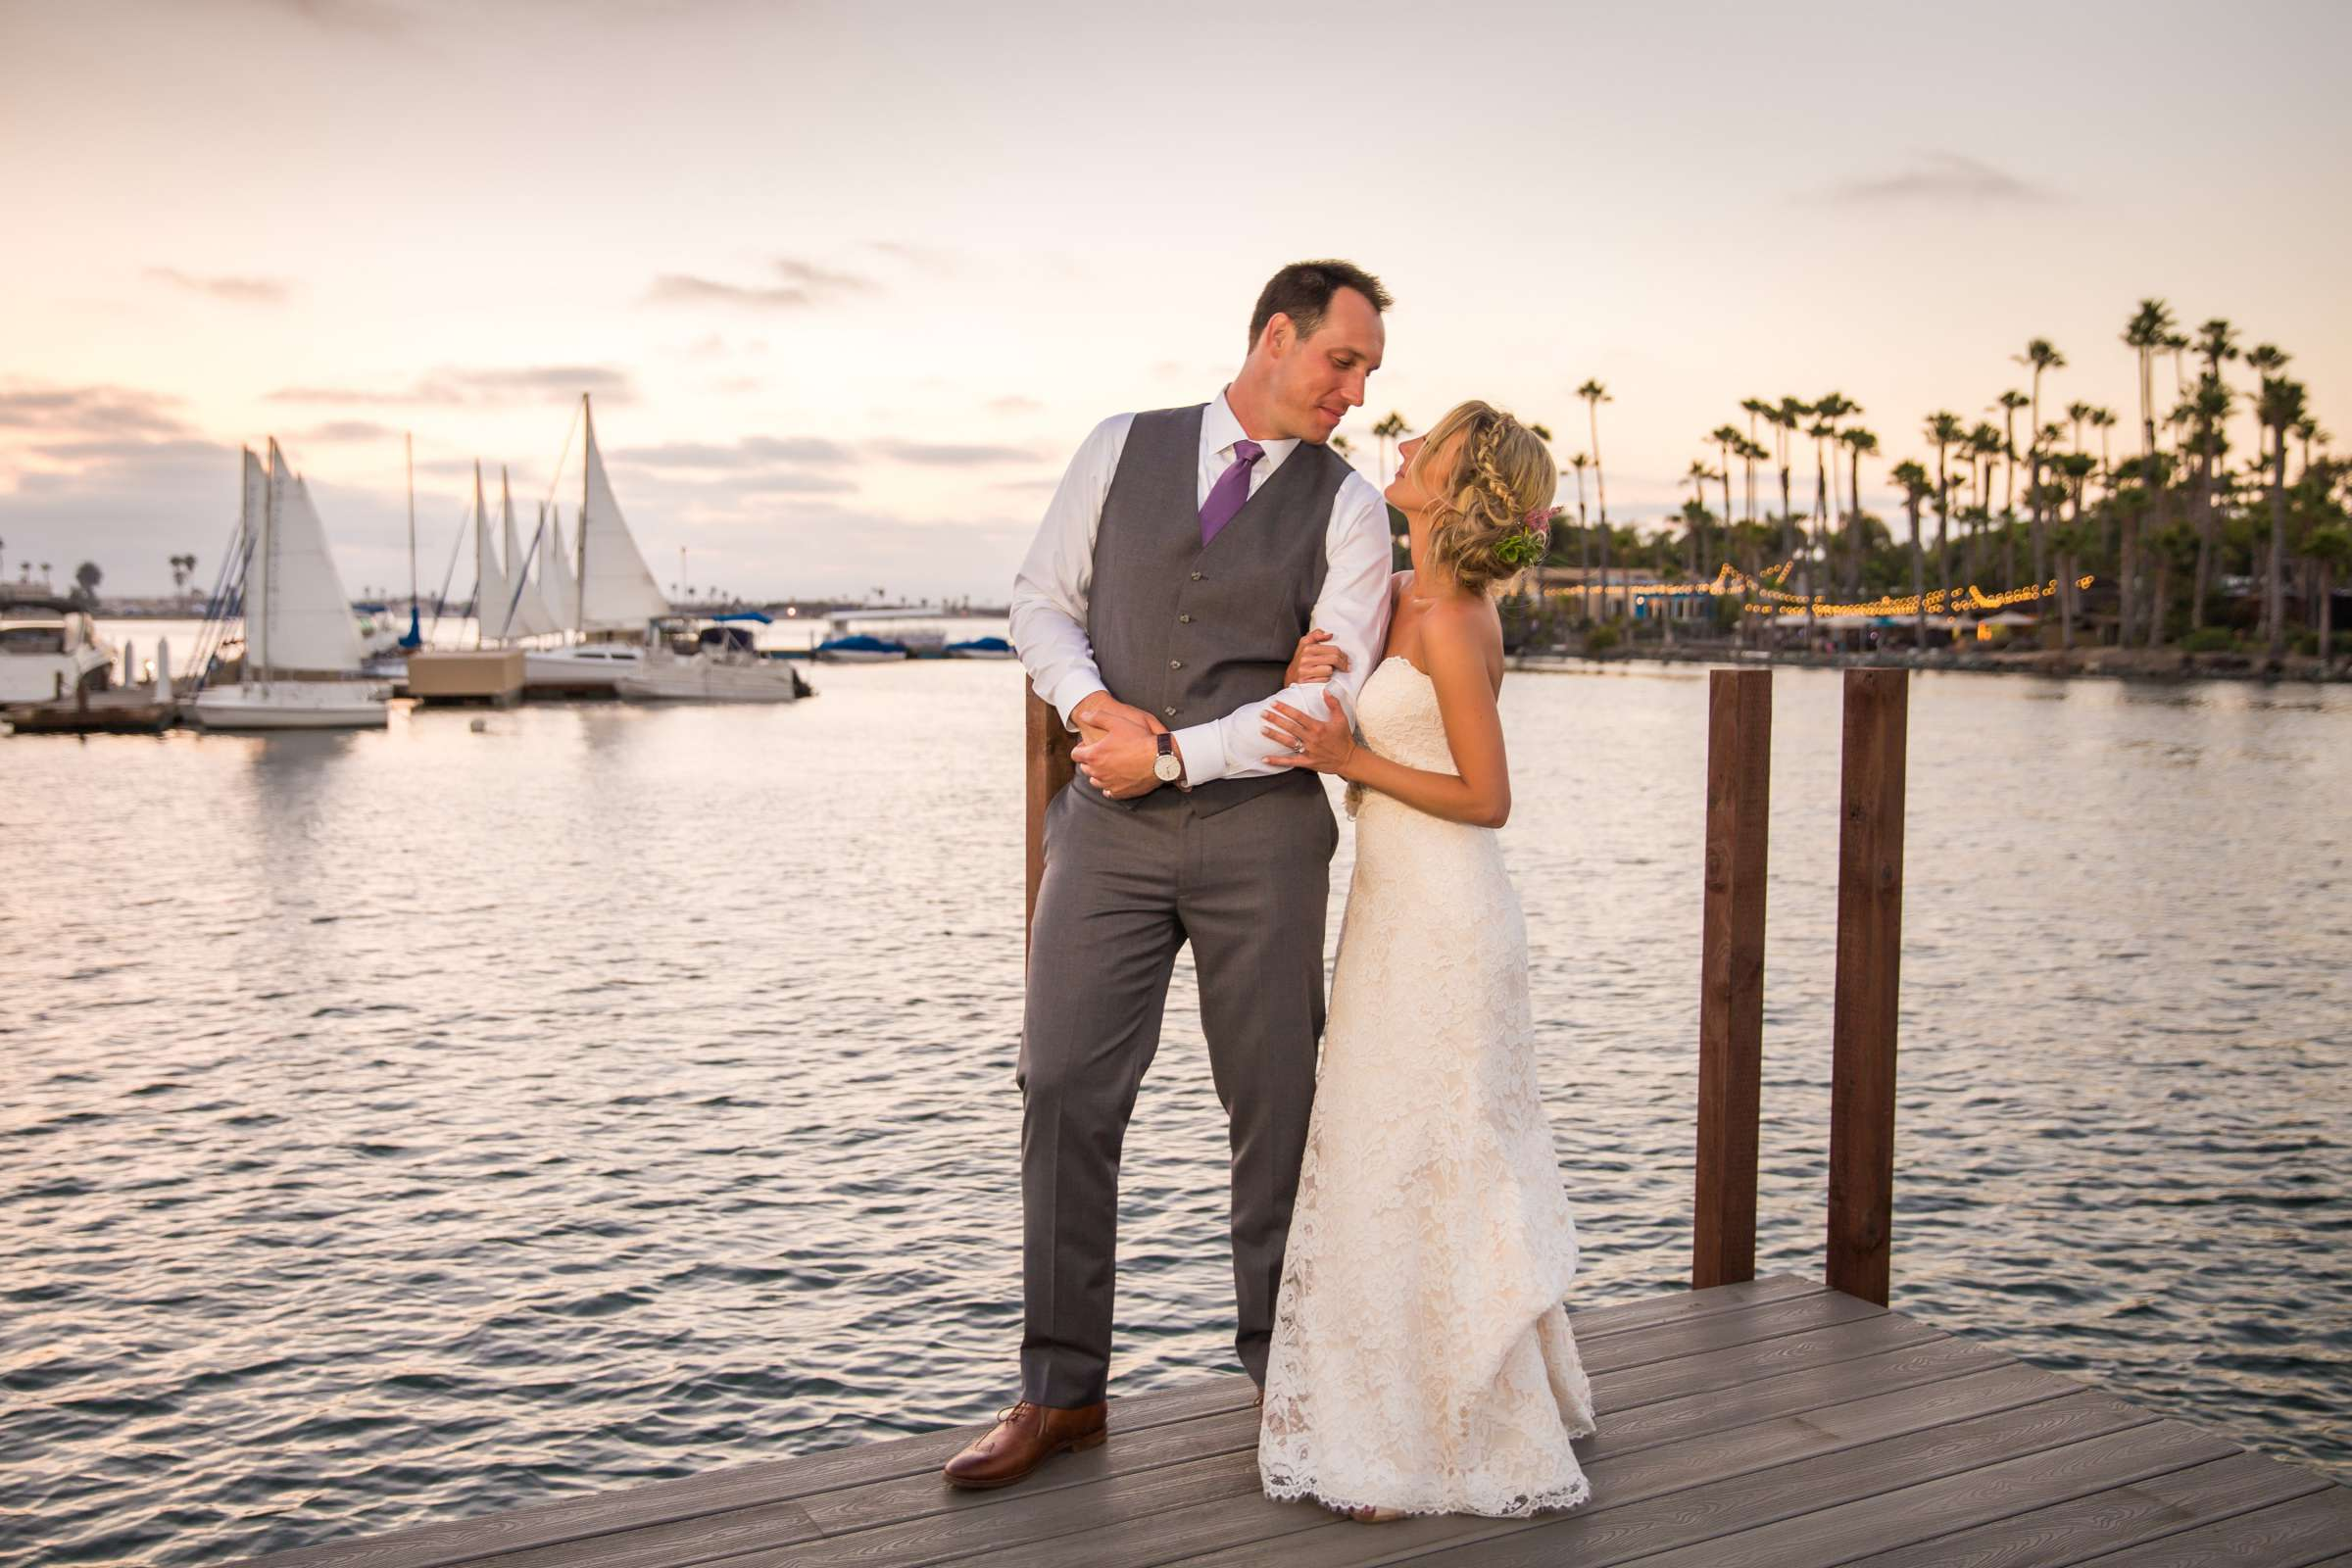 Paradise Point Wedding, Kimberly and Michael Wedding Photo #121 by True Photography